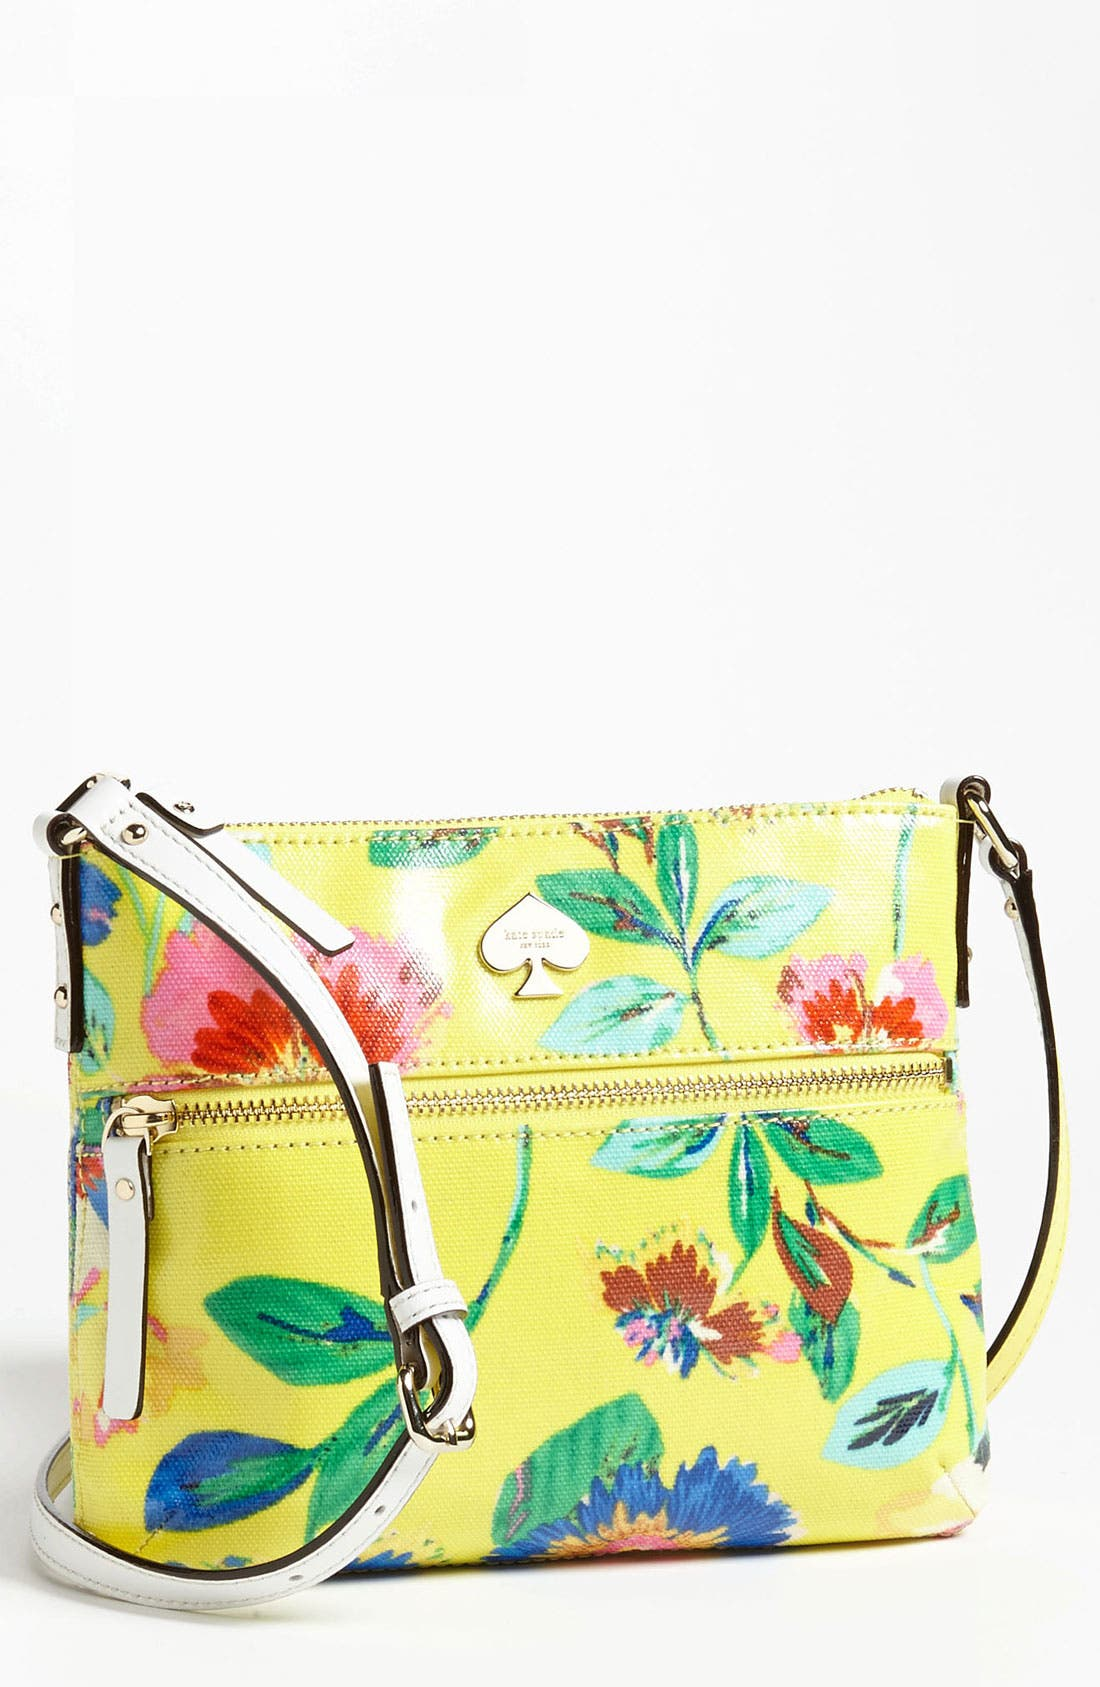 Alternate Image 1 Selected - kate spade new york 'flicker - tenley' crossbody bag